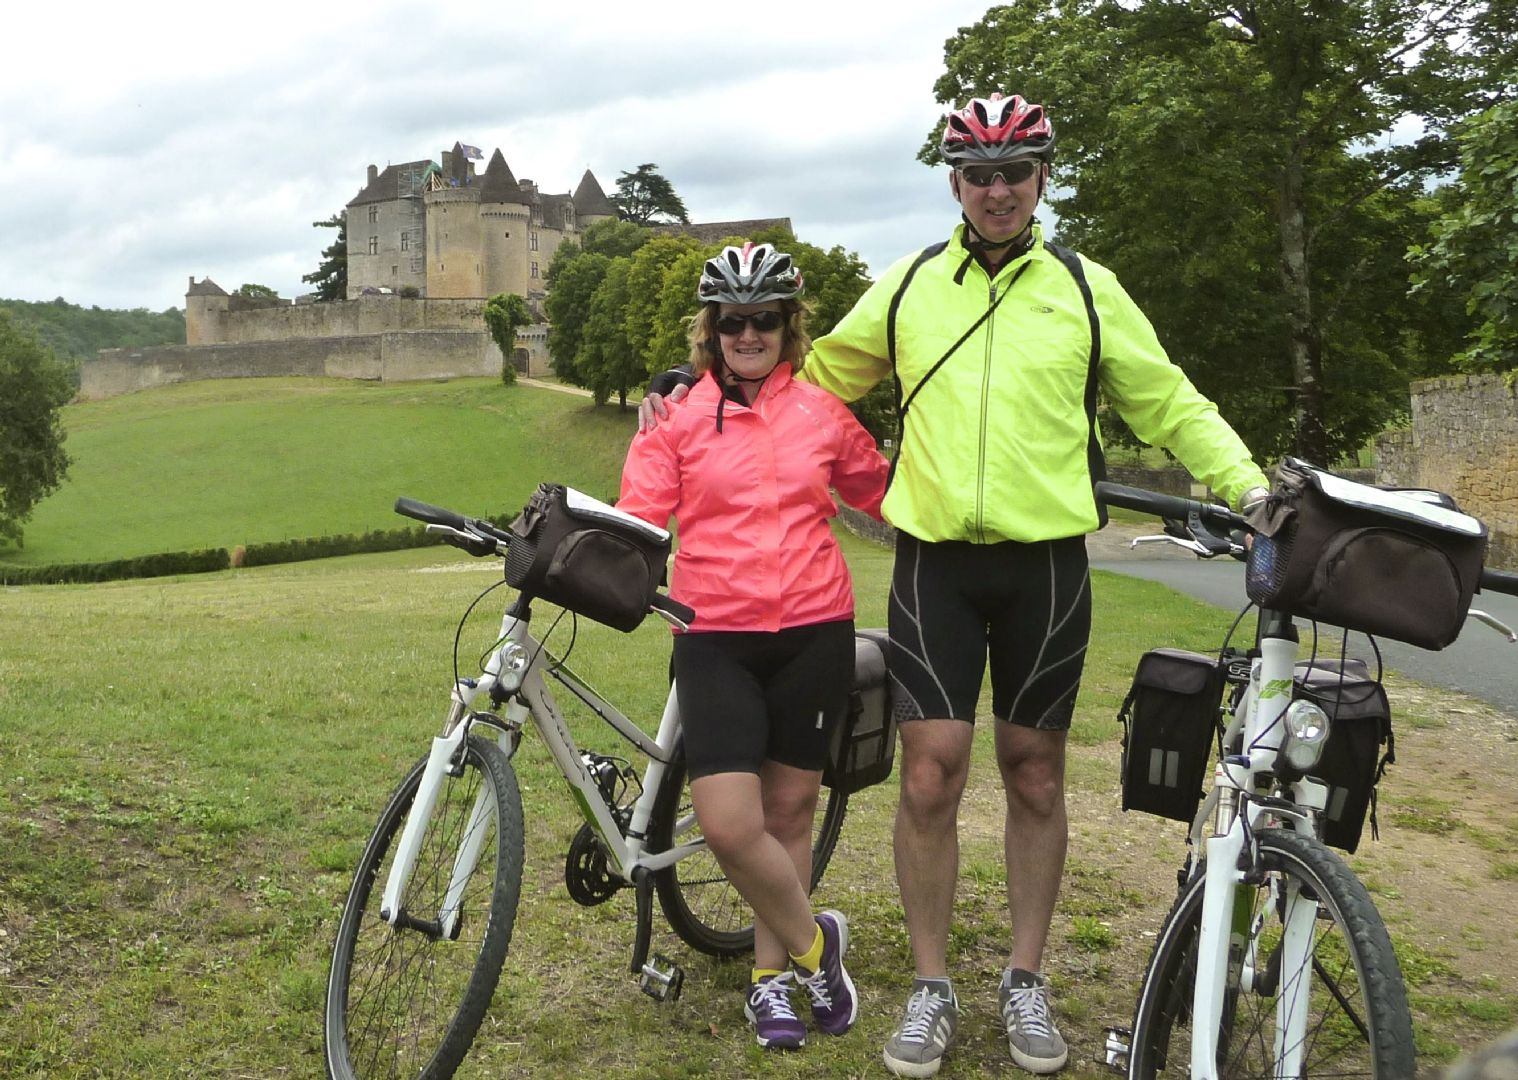 dordognecycling4.jpg - France - Dordogne Delights - Self-Guided Leisure Cycling Holiday - Leisure Cycling